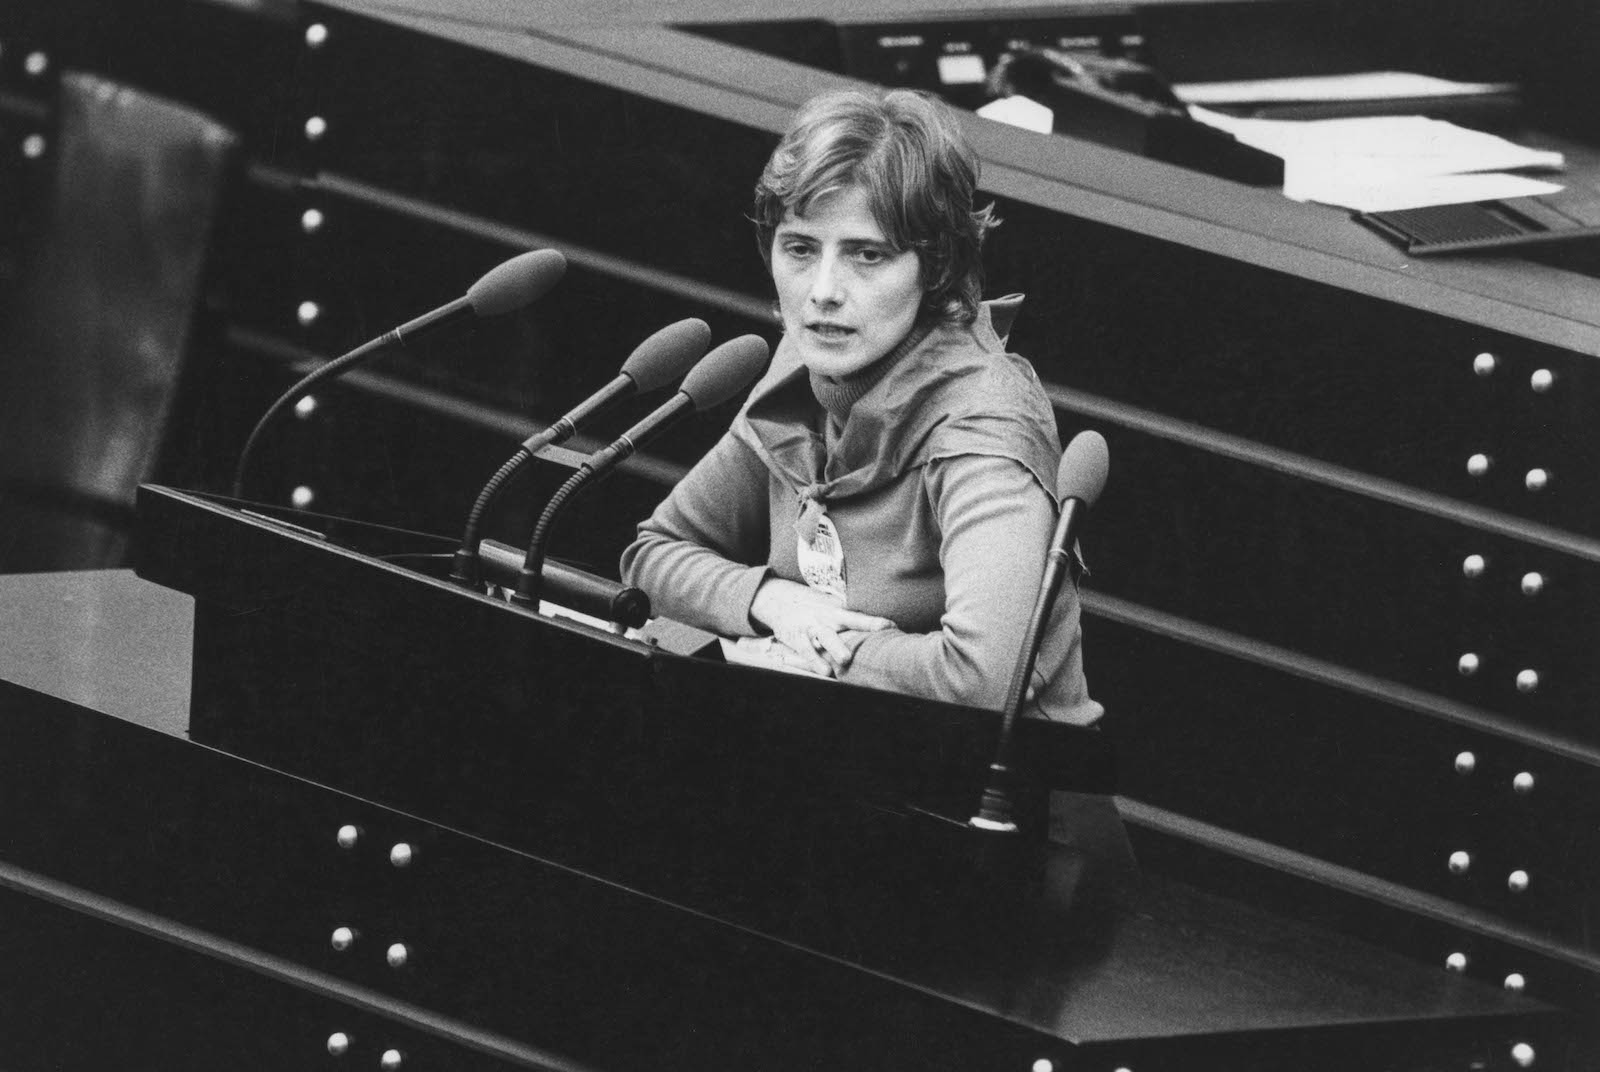 a black and white photo of a woman with short hair sitting in front of a microphone talking